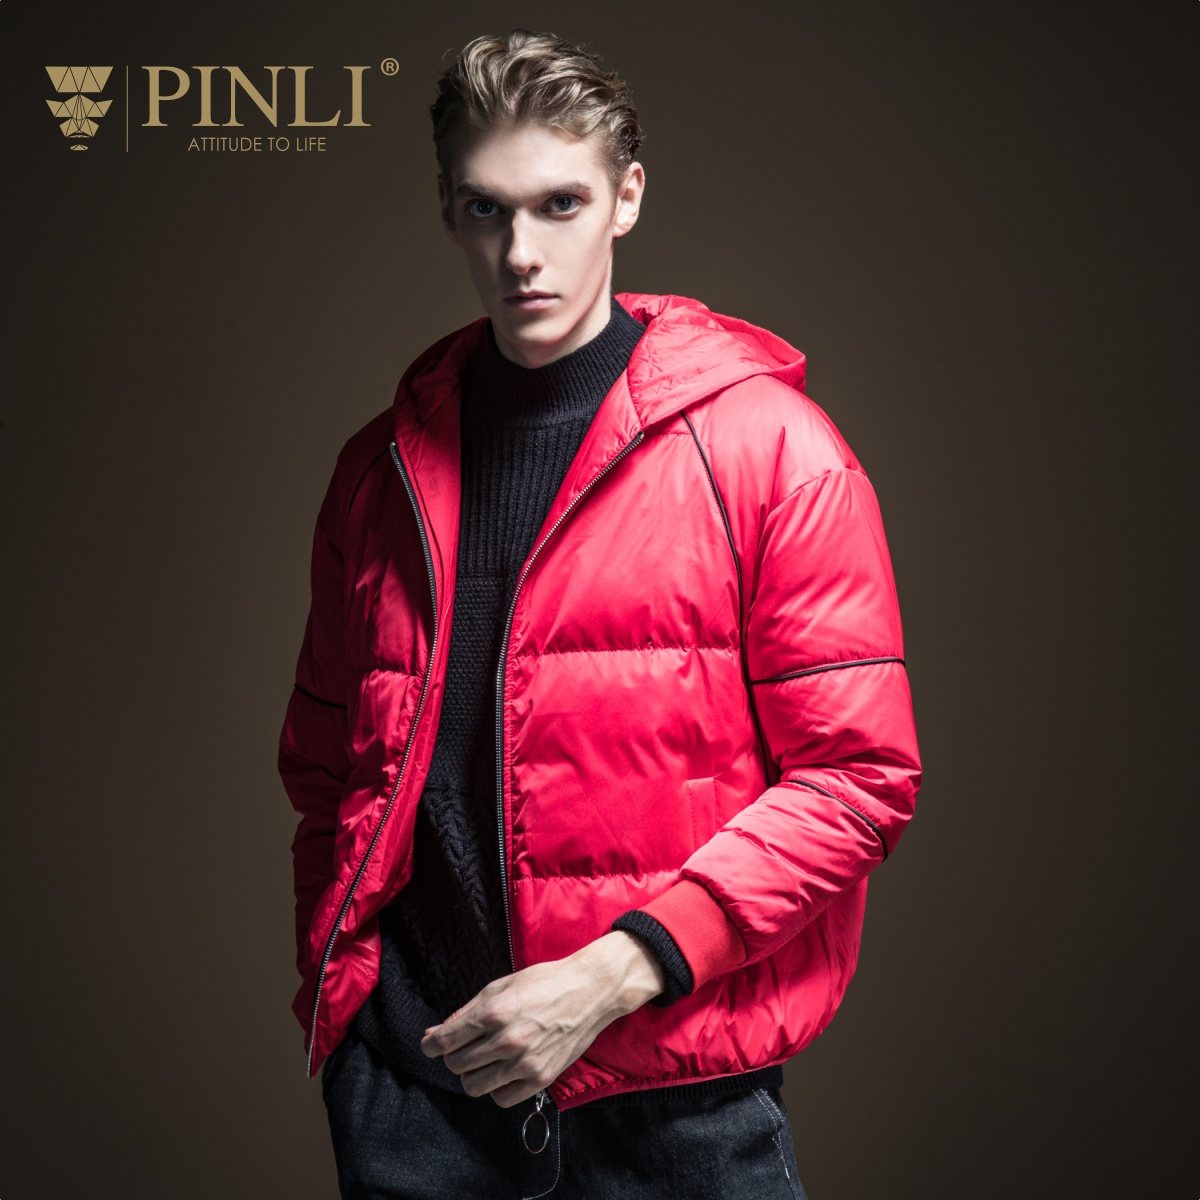 Down Jacket Rushed Jacket New Arrival 2019 Sale Sobretudo Pinli Winter Men's Solid Color Short Hooded Casual Coat B194208811